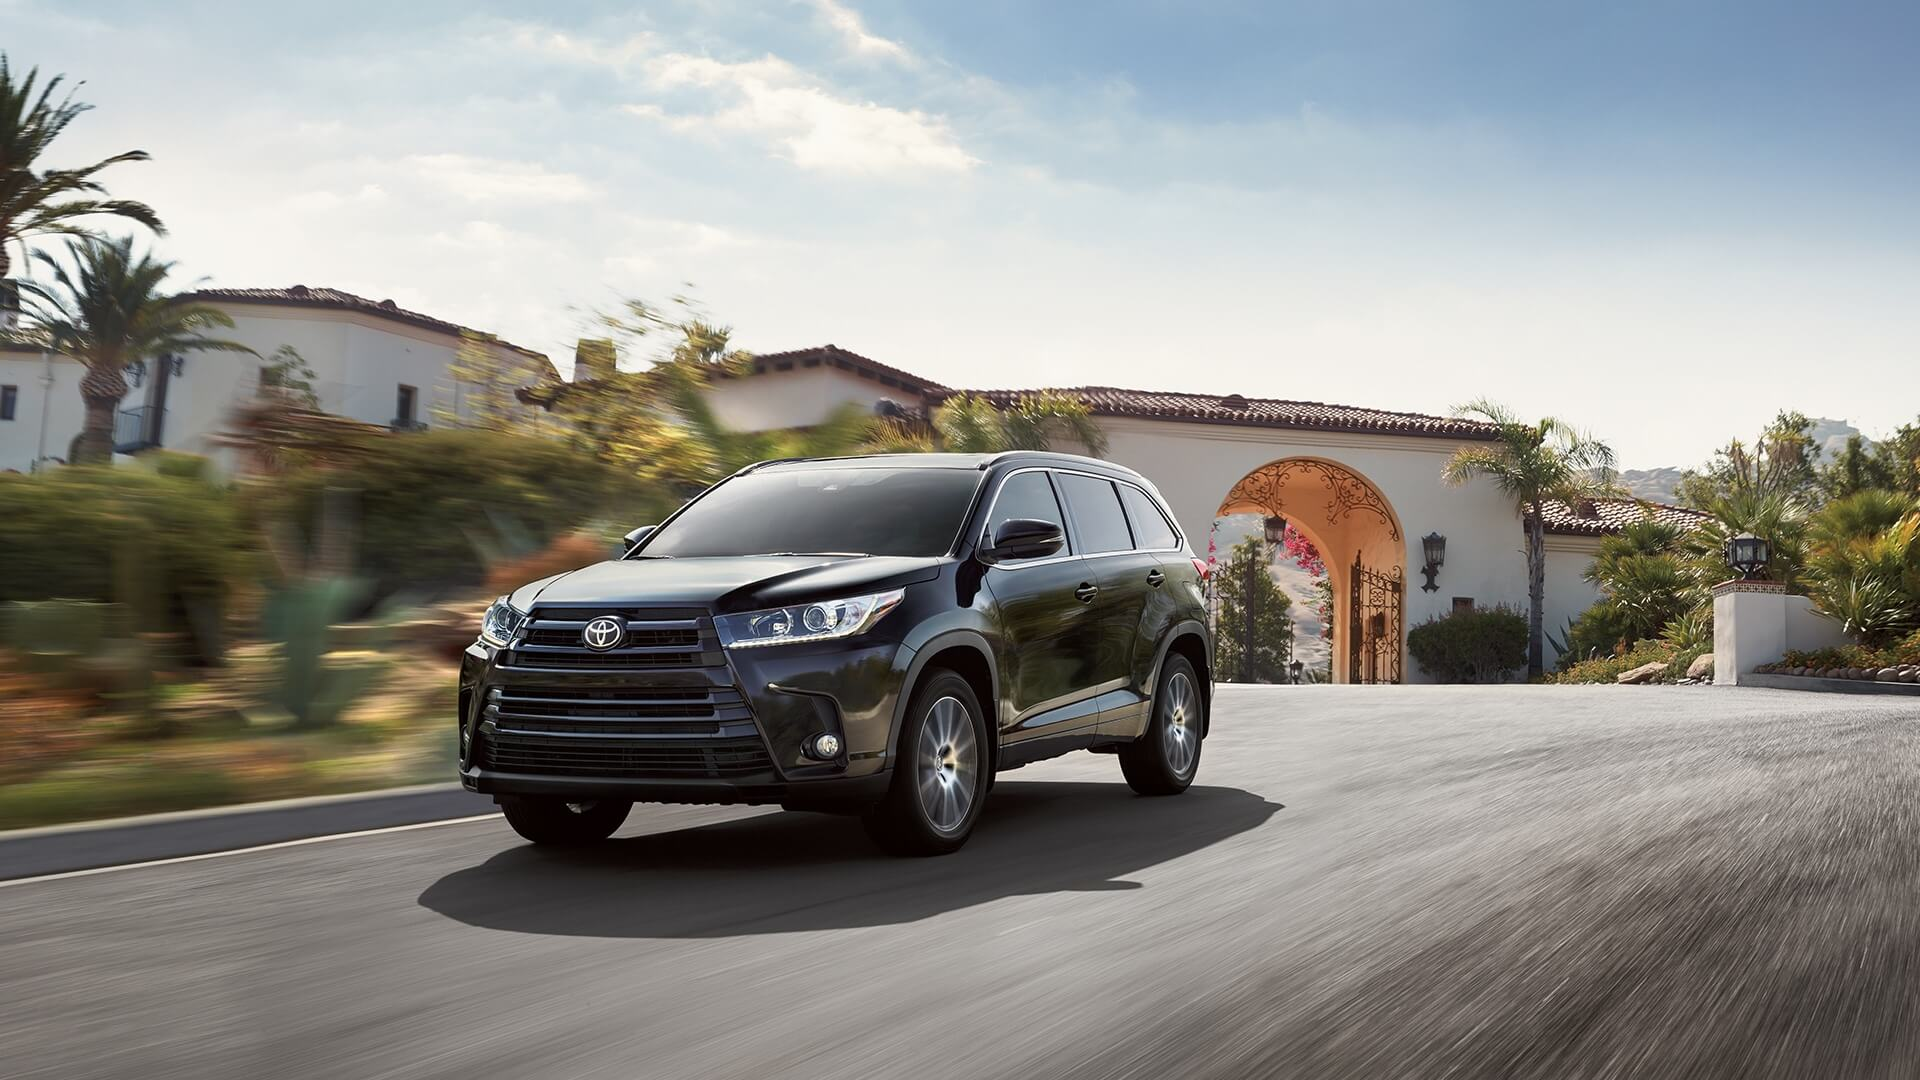 2017 Toyota Highlander Driving